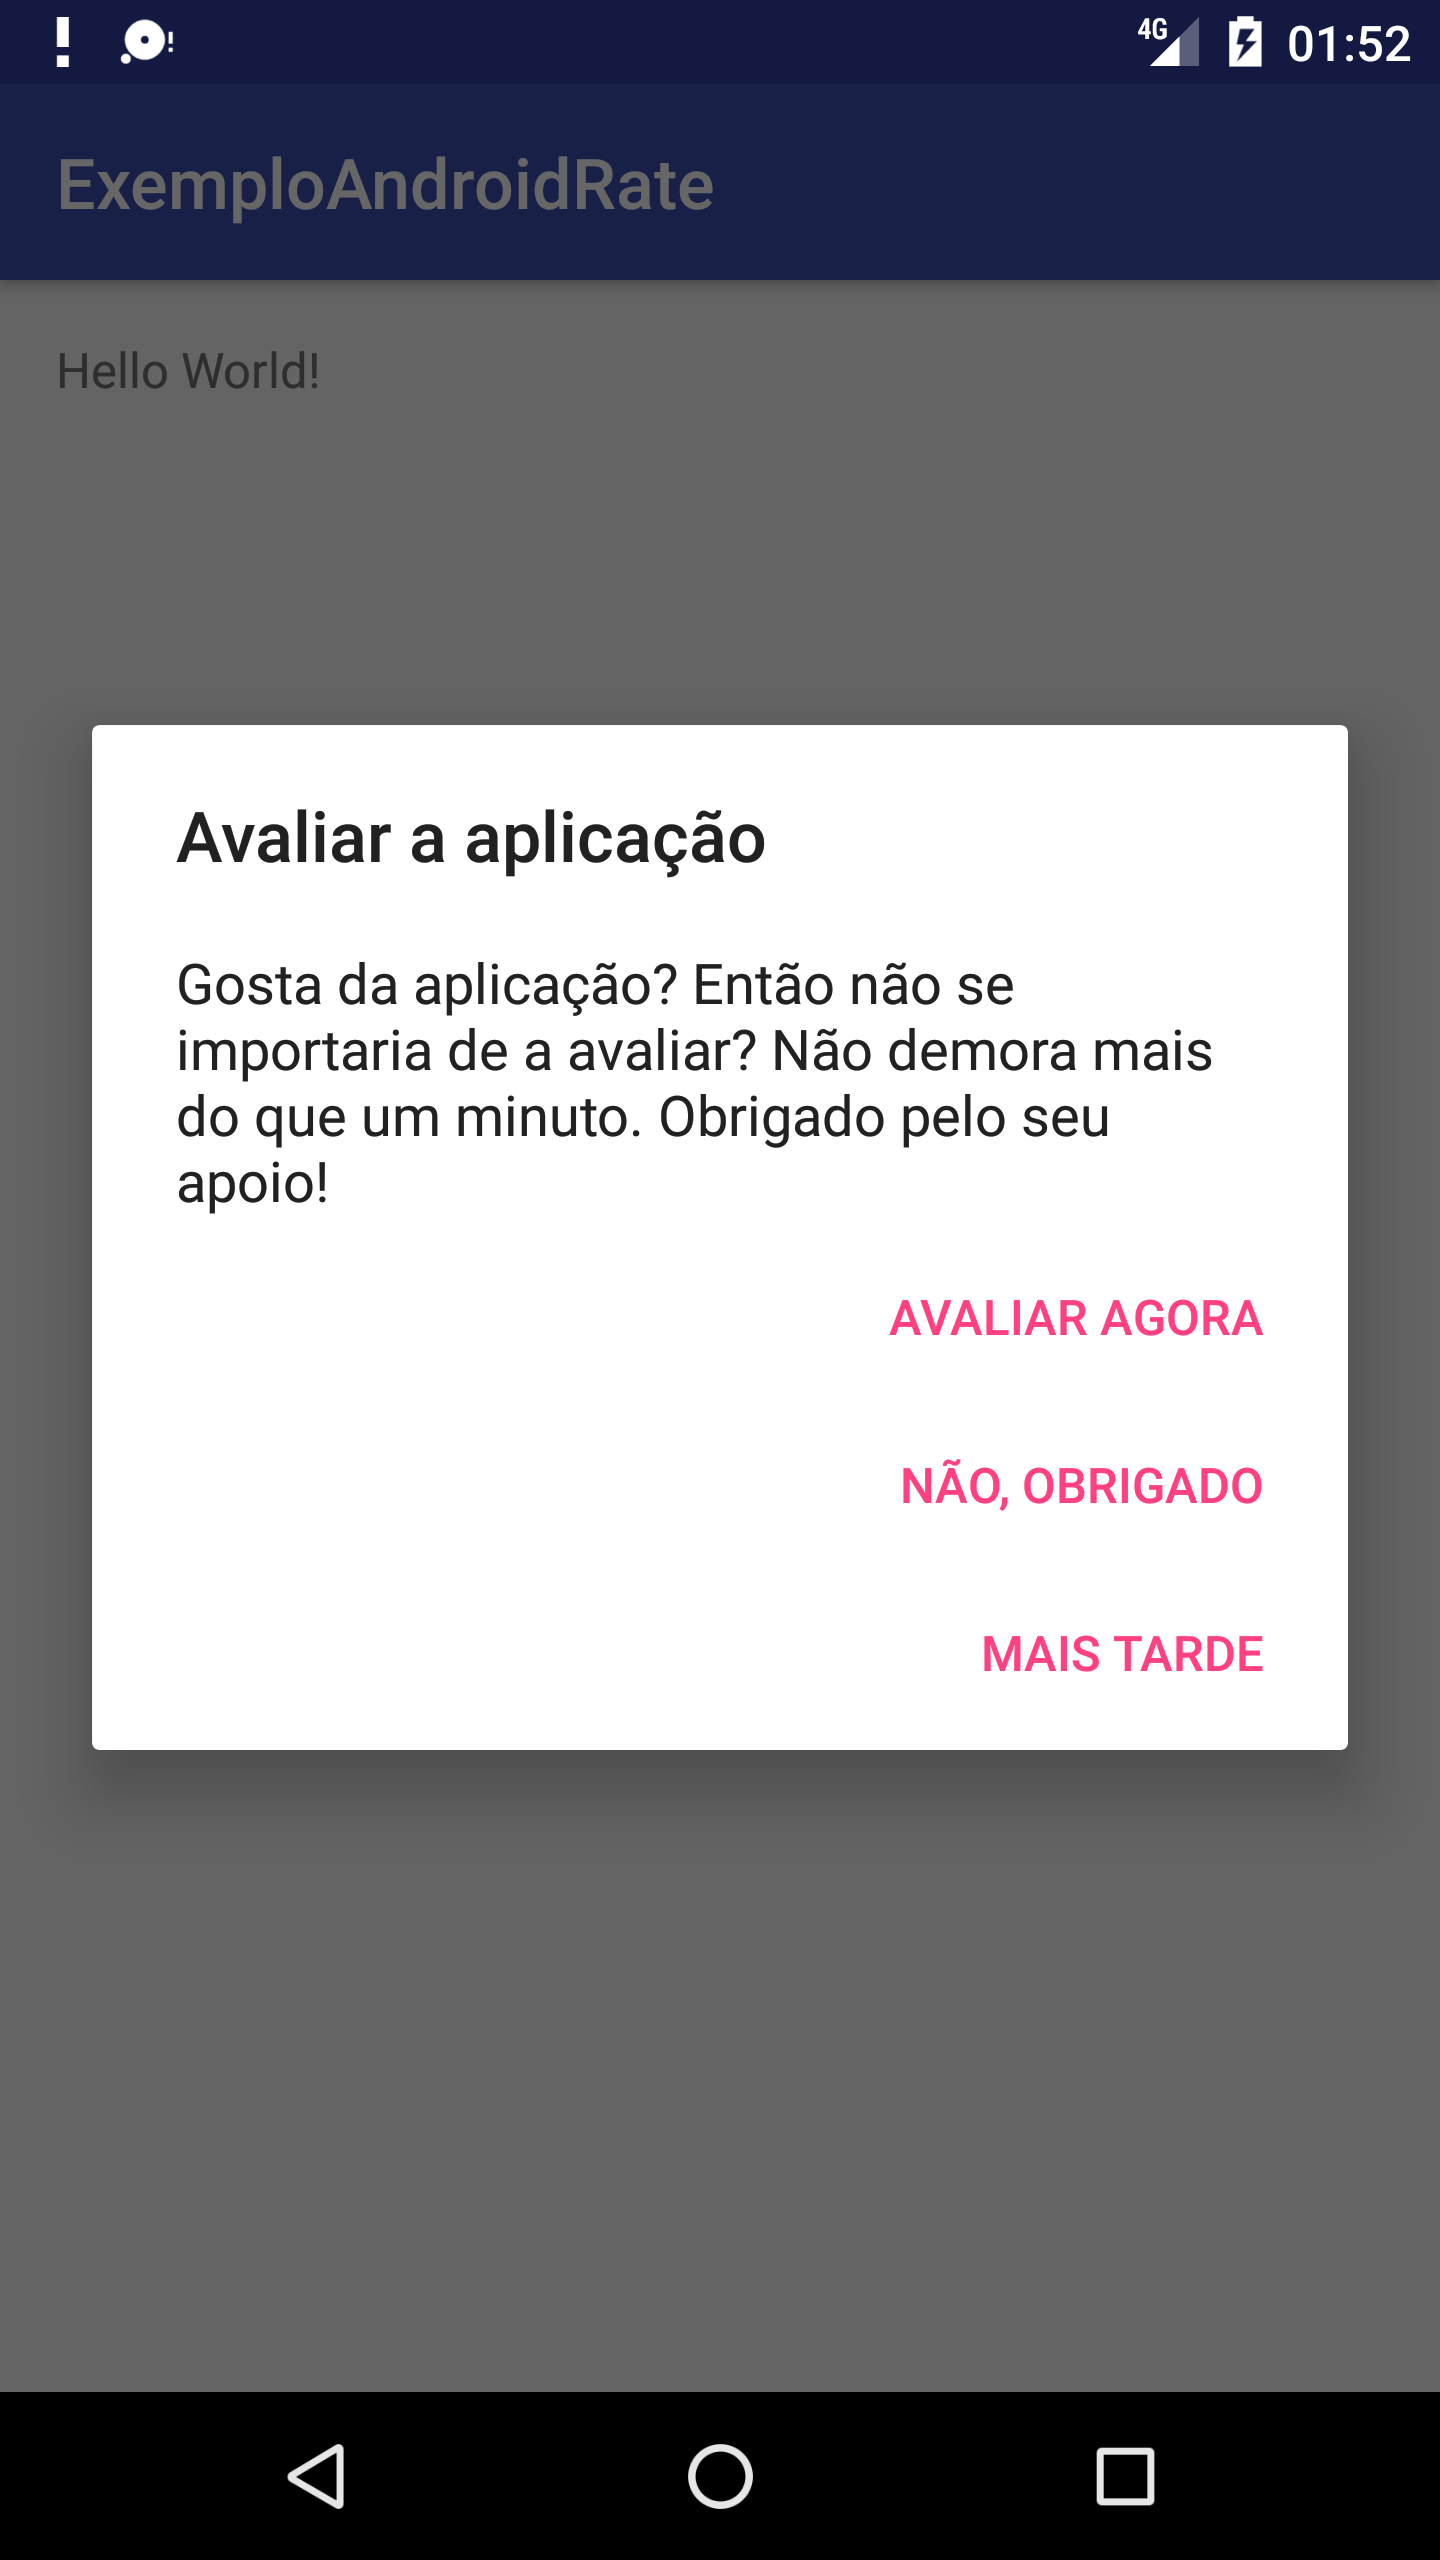 android_rate_portuguese